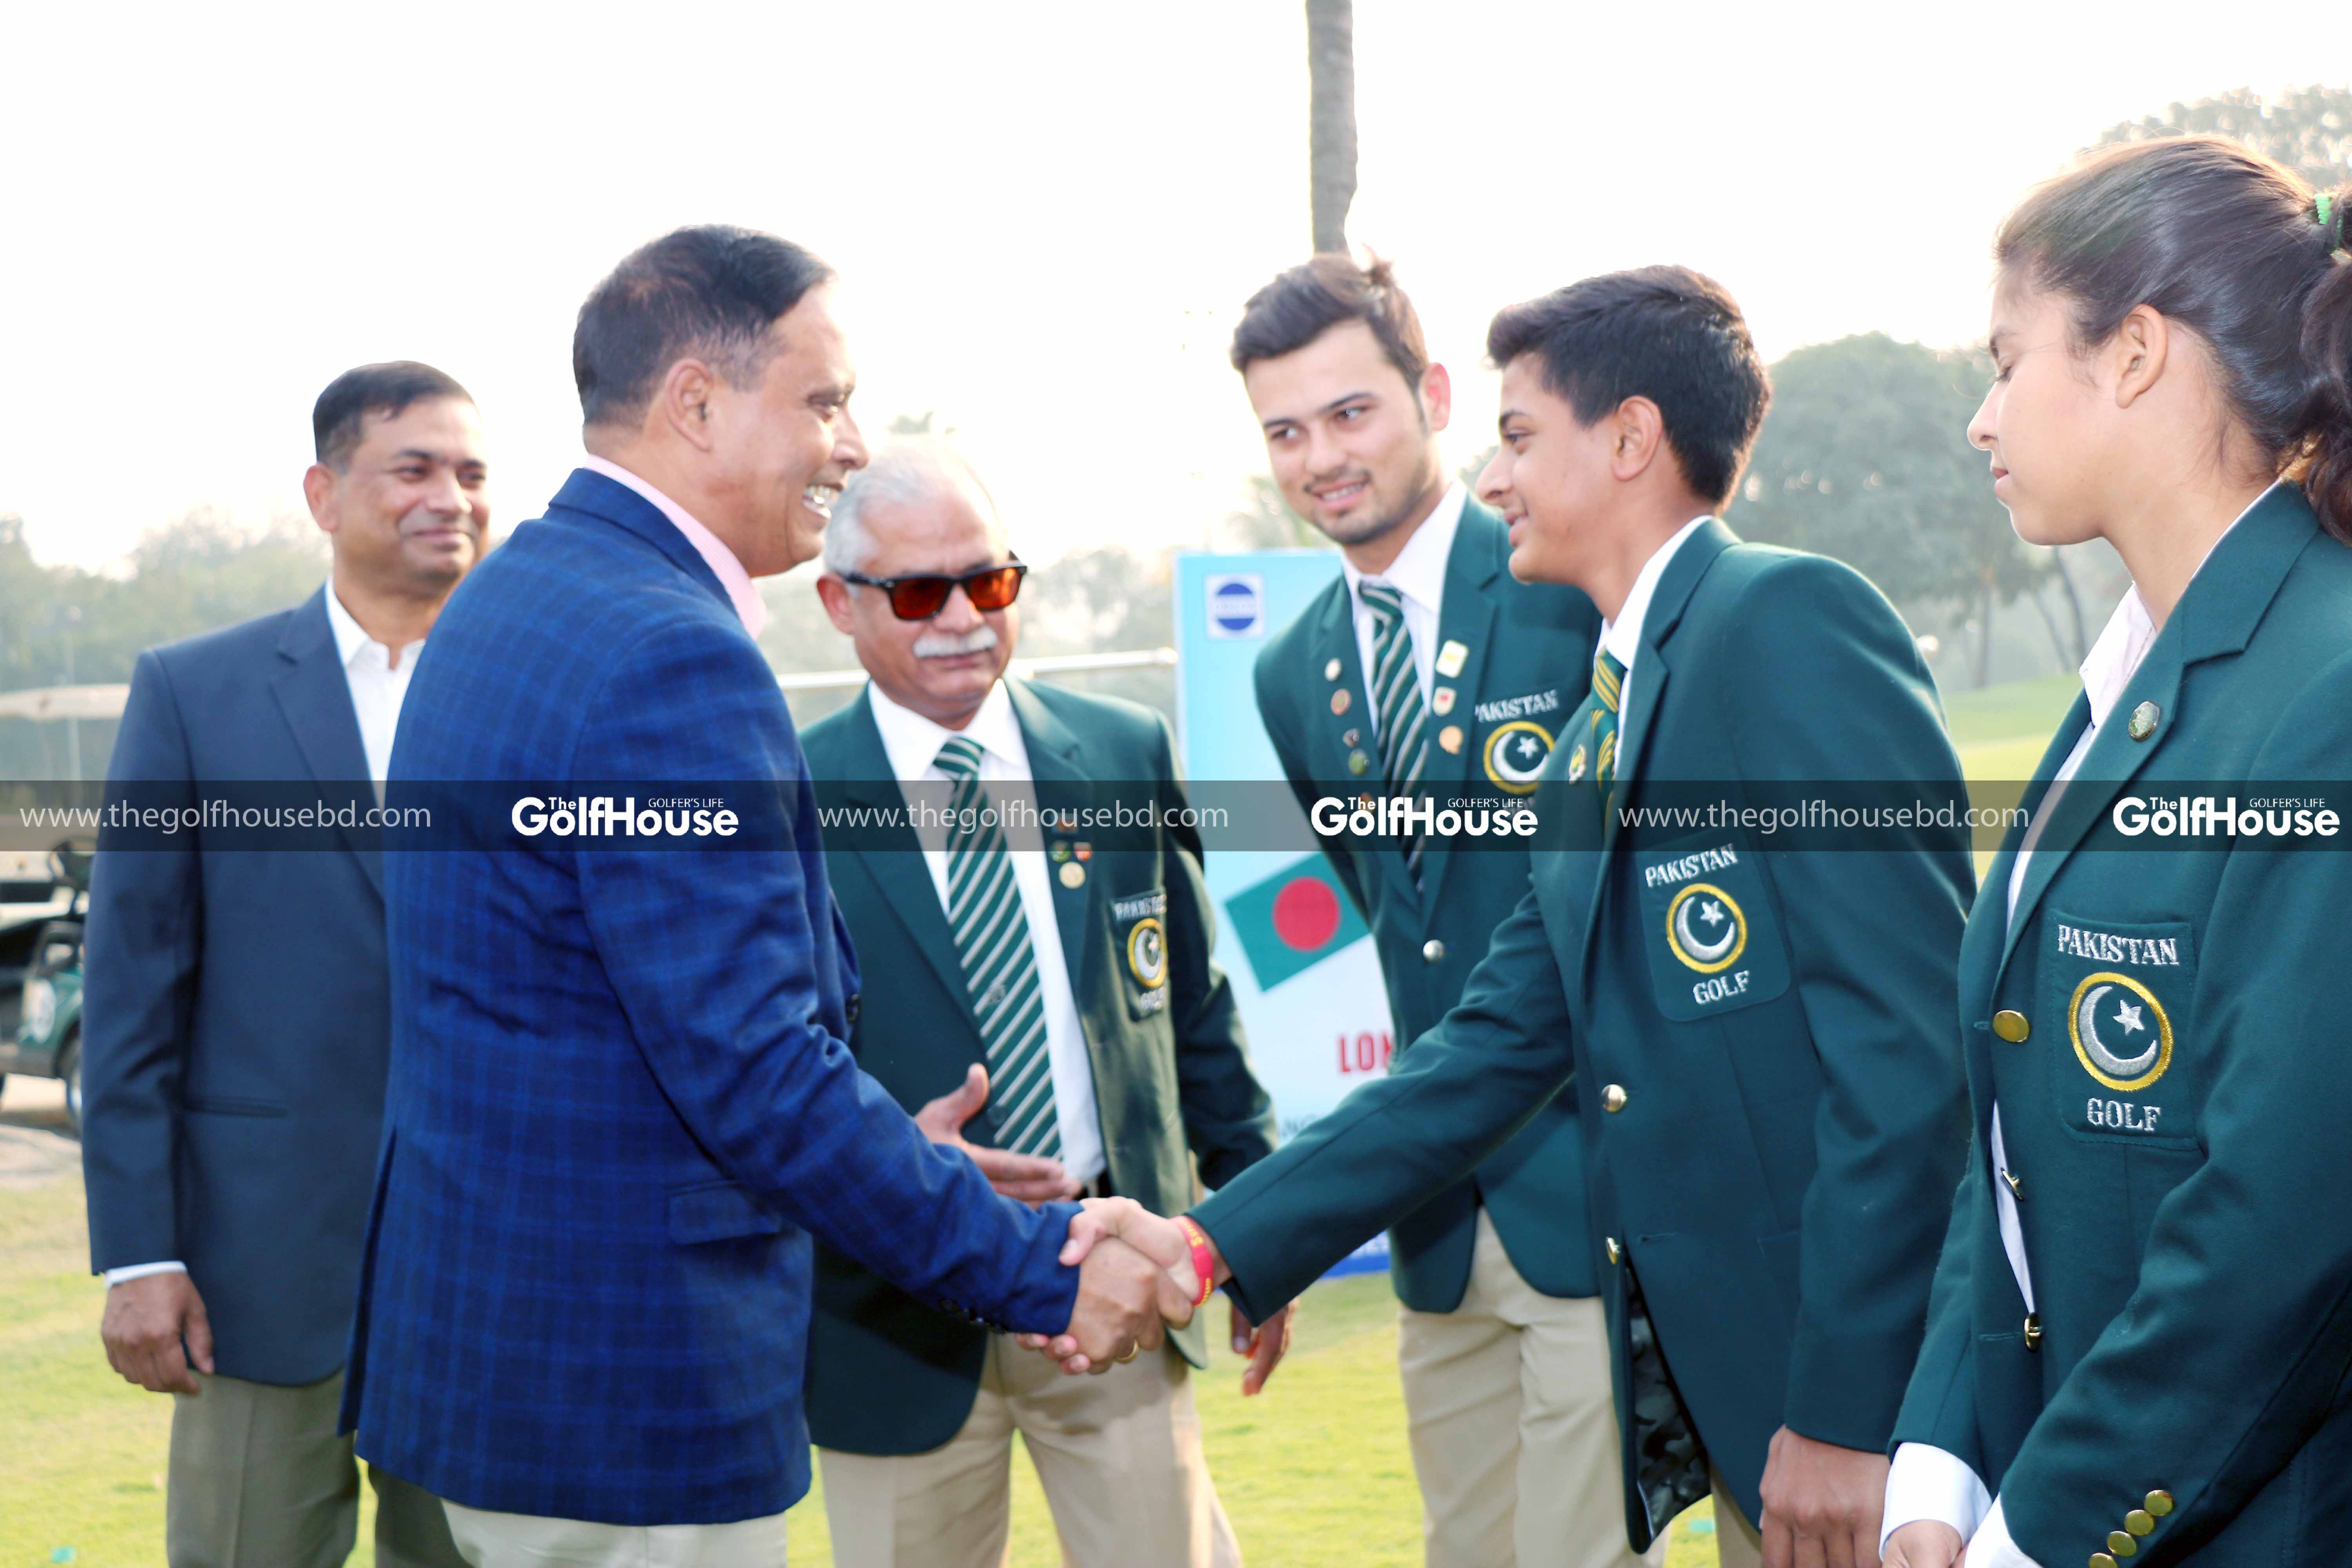 The tournament was inaugurated by Major General Md Enayet Ullah, Senior Vice President of Bangladesh Golf Federation where Brigadier General Md Sayeed Siddiki, Secretary General of Bangladesh Golf Federation, was present as the chief guest.